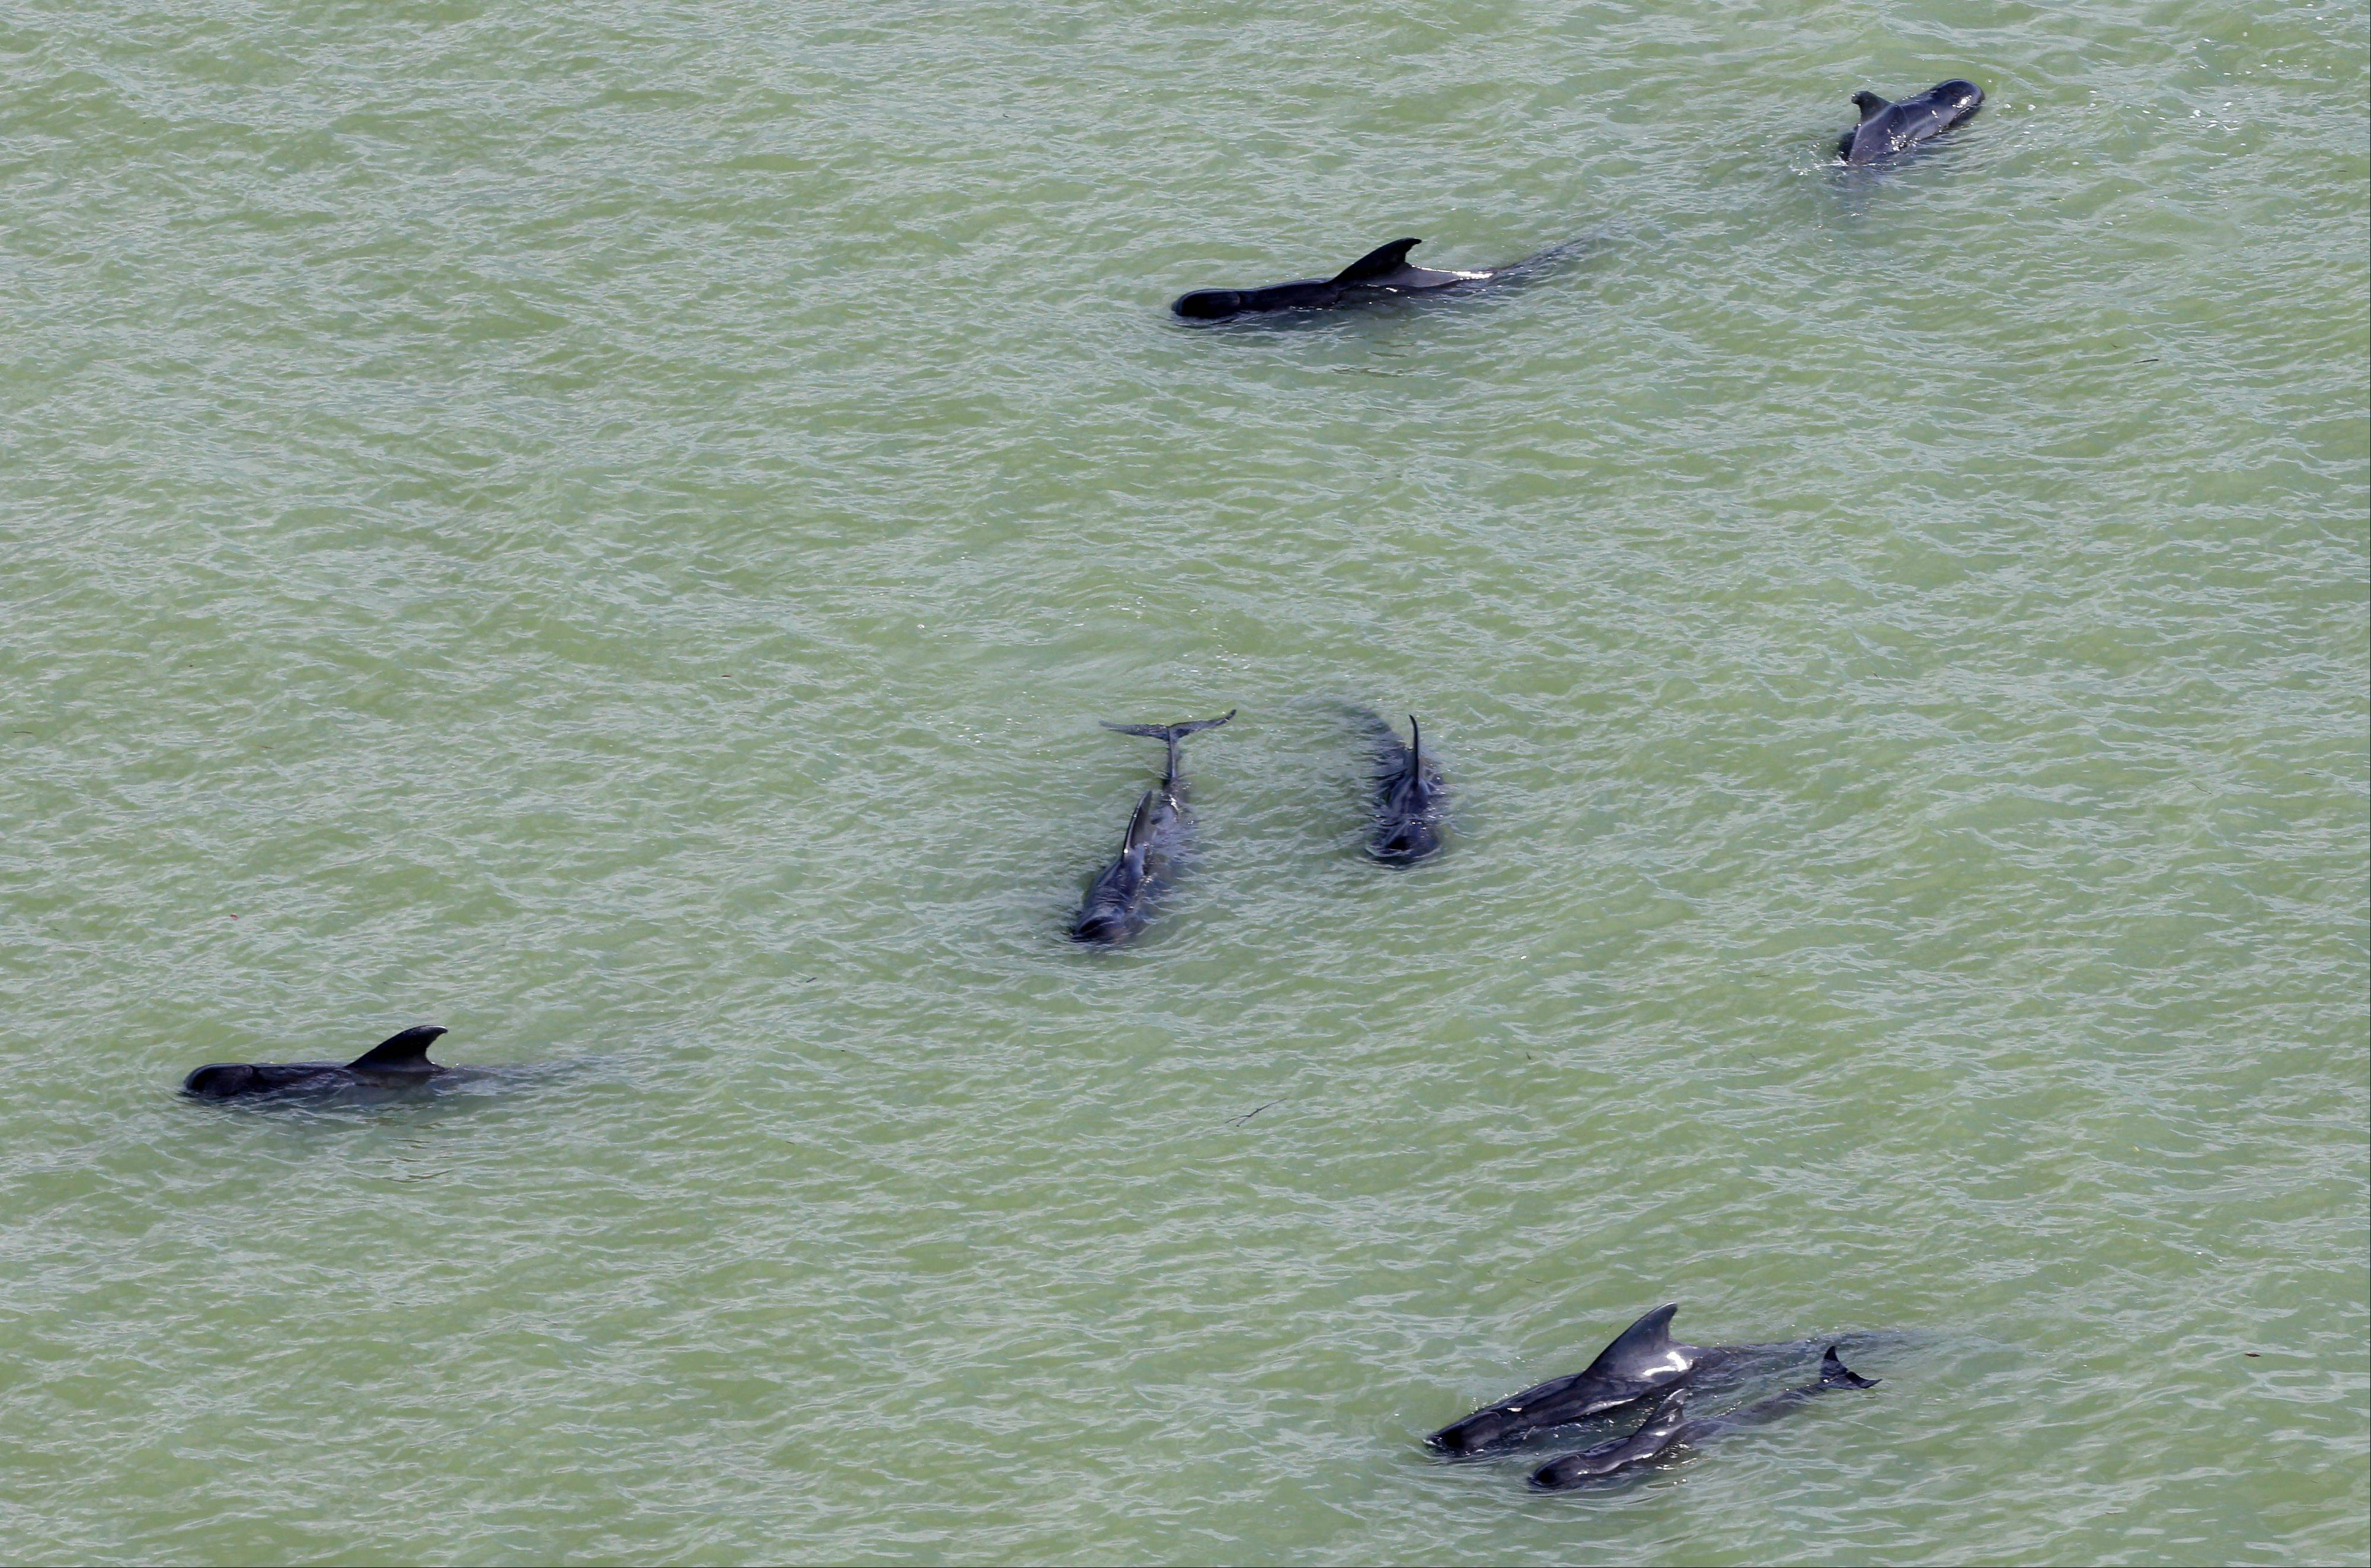 Dozens of pilot whales are stranded in shallow water in a remote area of Florida�s Everglades National Park on Dec. 4.